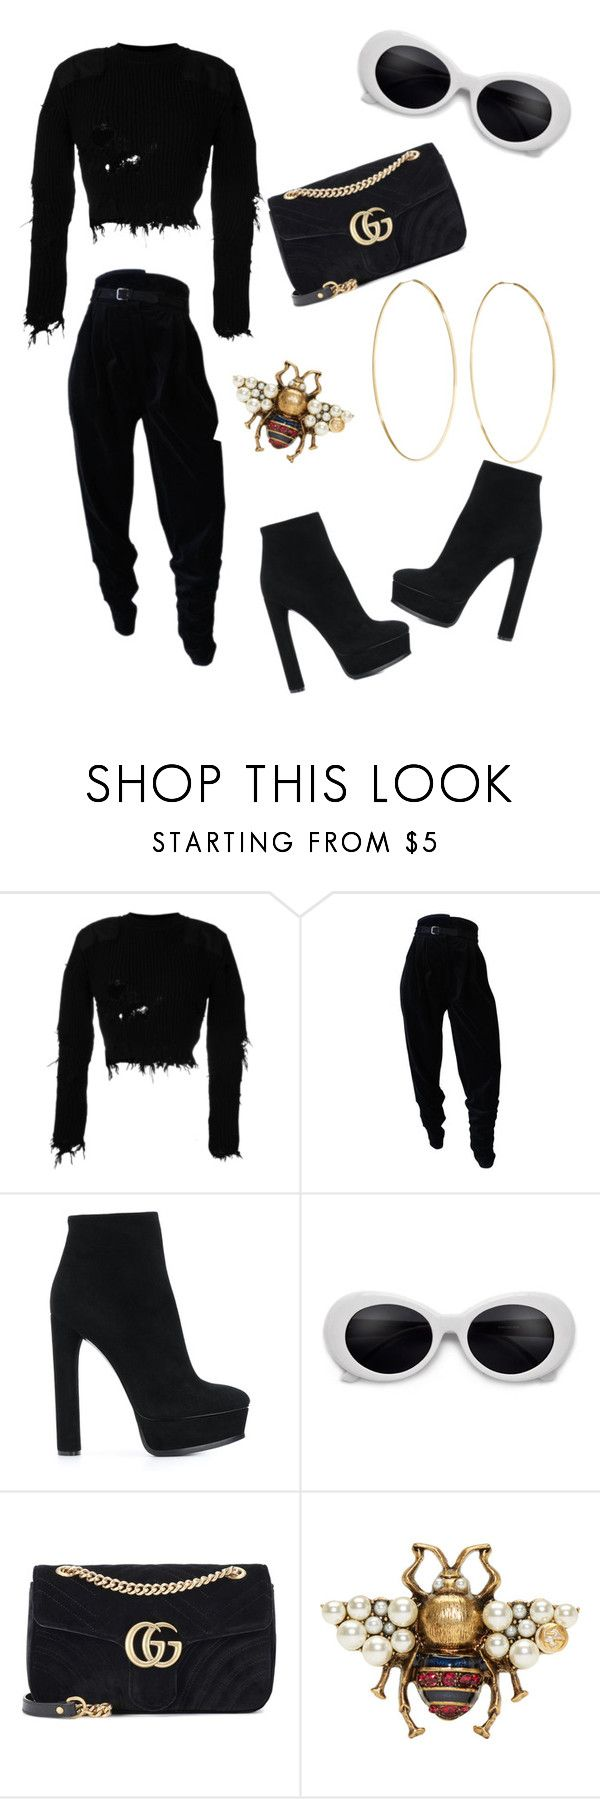 """""""Untitled #51"""" by stylezgalore ❤ liked on Polyvore featuring Yeezy by Kanye West, Versace, Casadei, Gucci and Magda Butrym"""